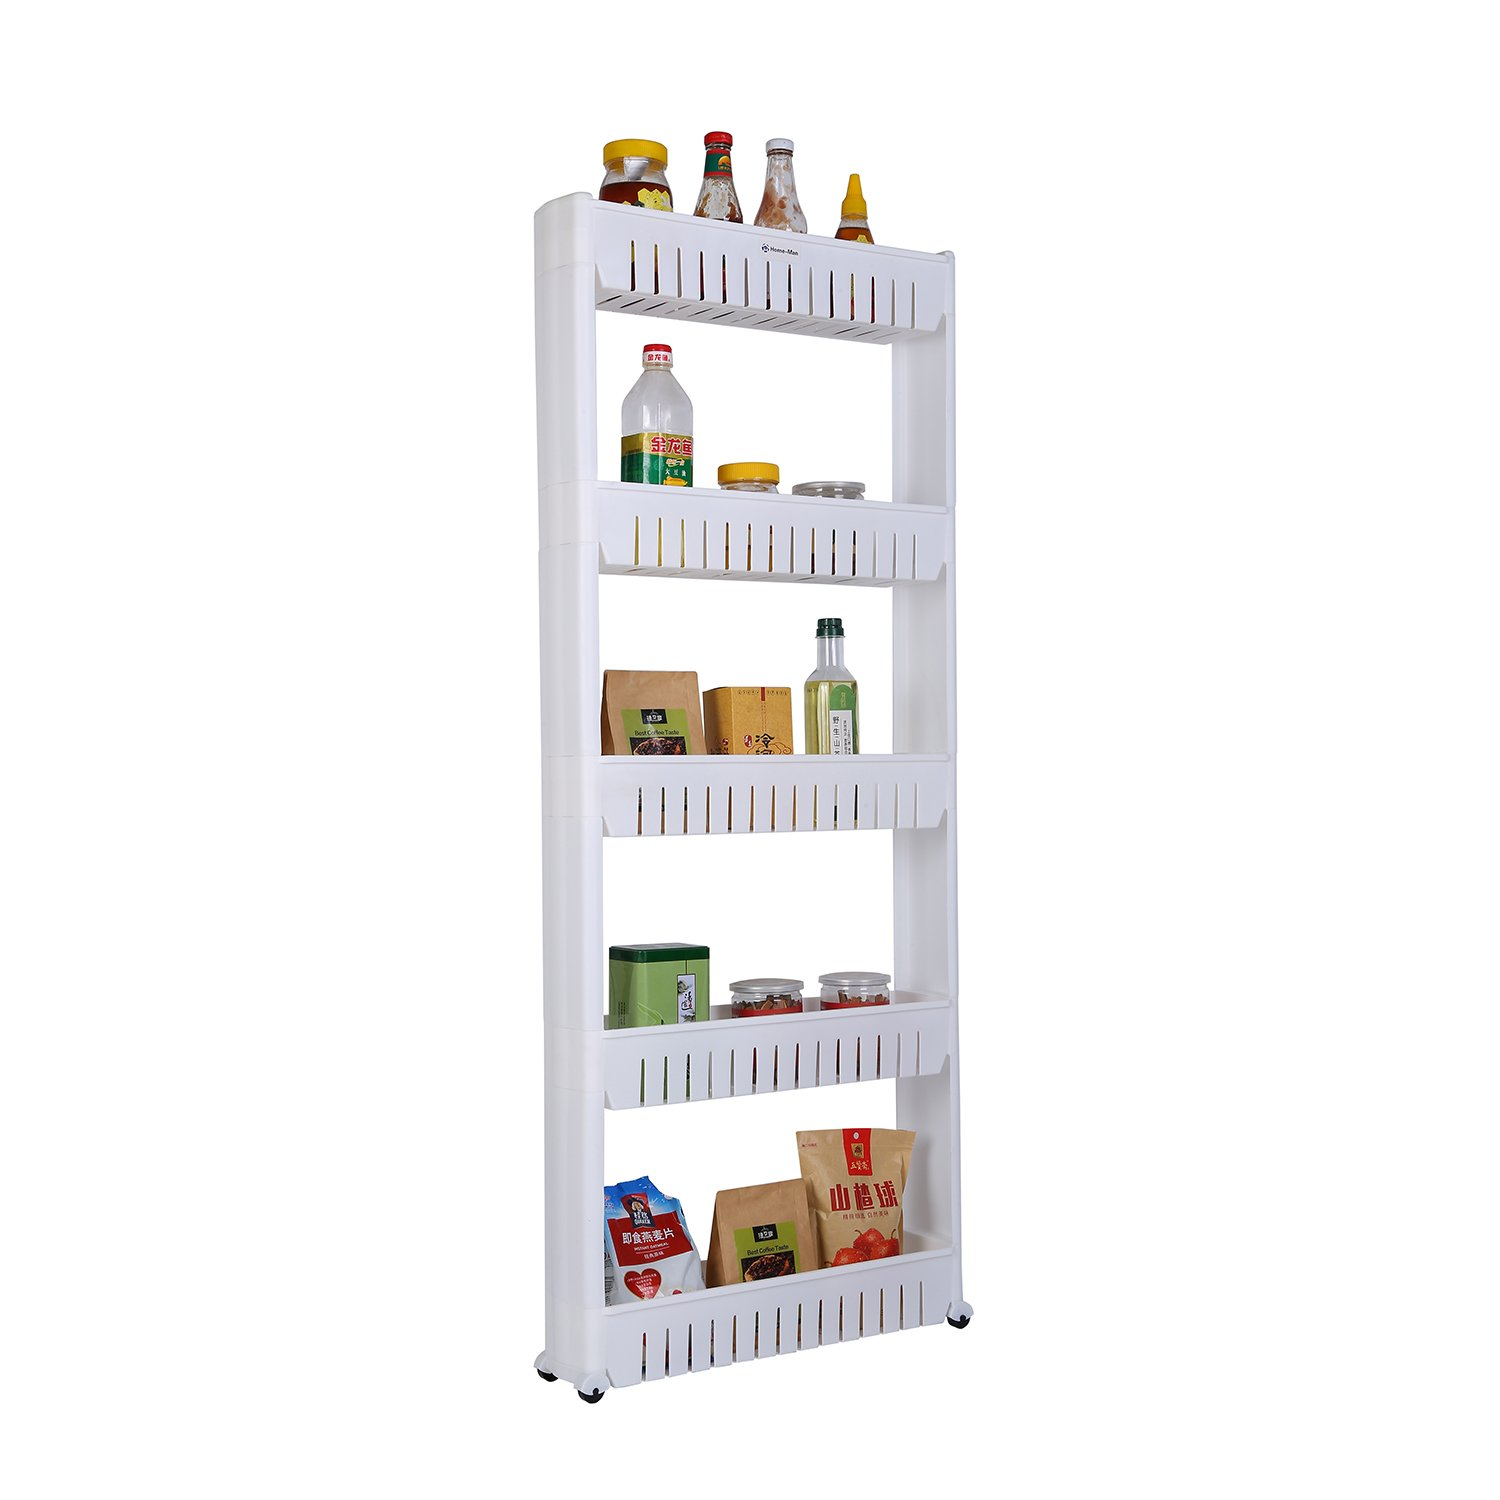 Home-Man Laundry Room Organizer, Mobile Shelving Unit Organizer with 5 Large Storage Baskets, Gap Storage Slim Slide Out Pantry Storage Rack for Narrow Spaces by Home-Man